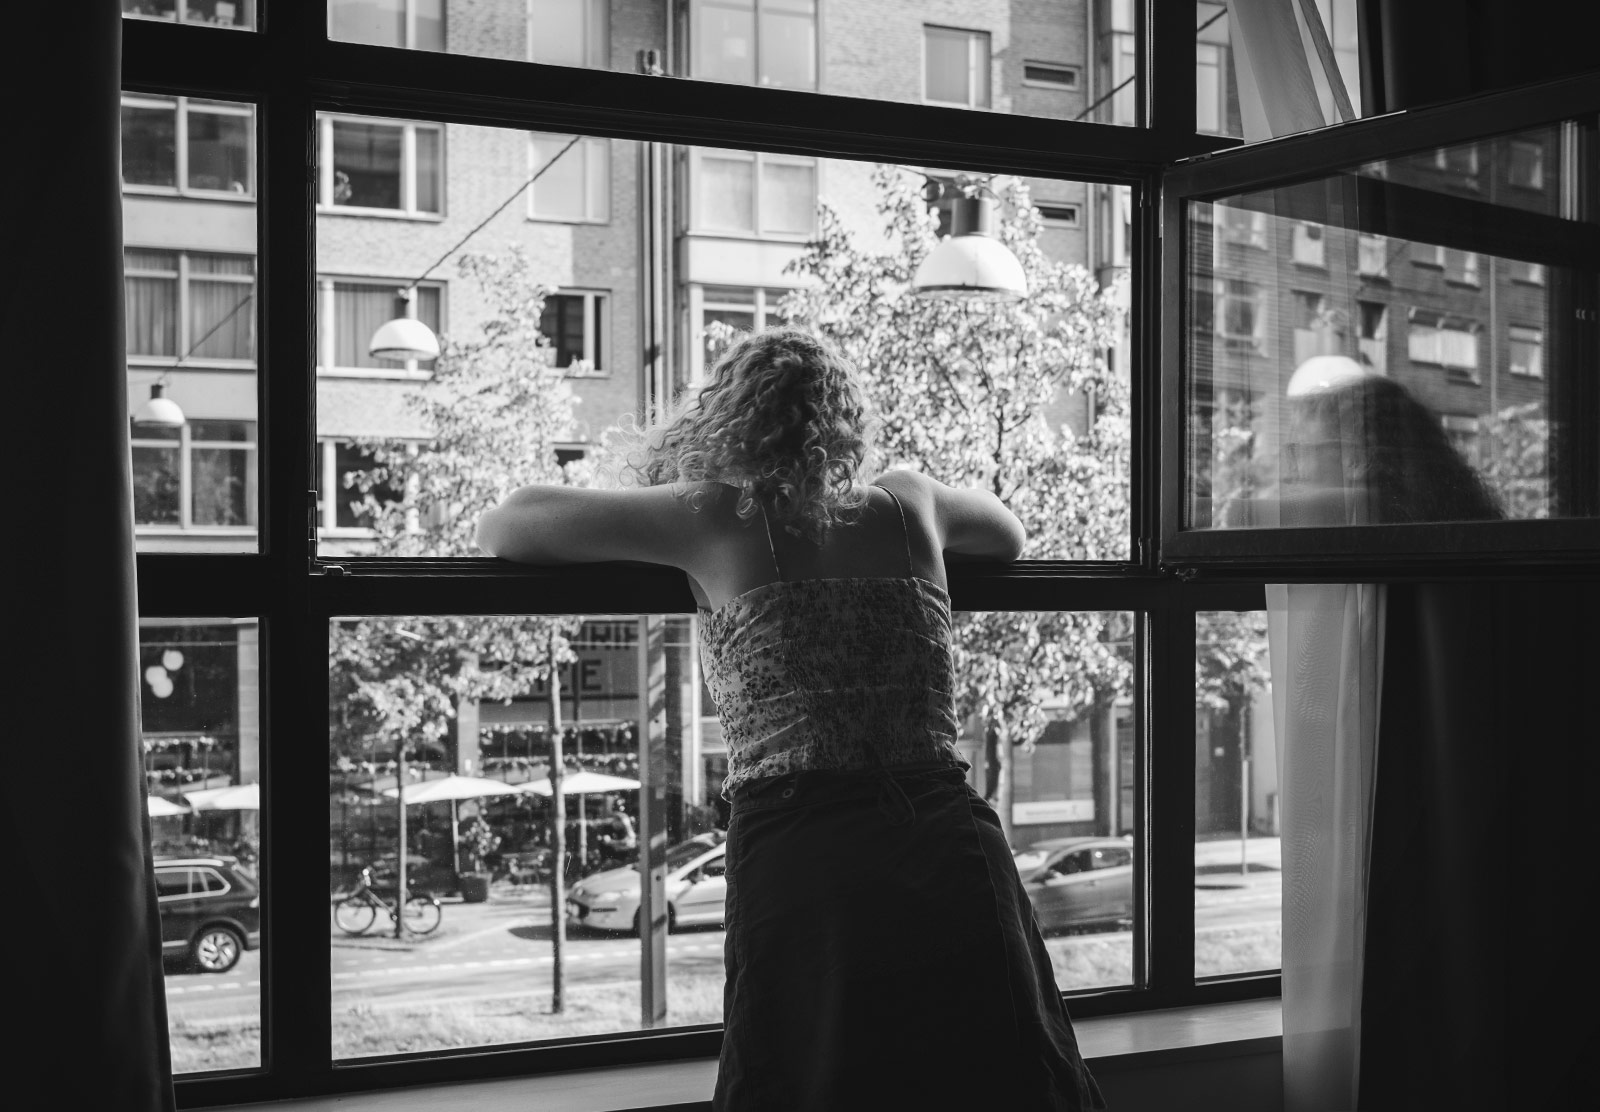 Woman leaning out of window